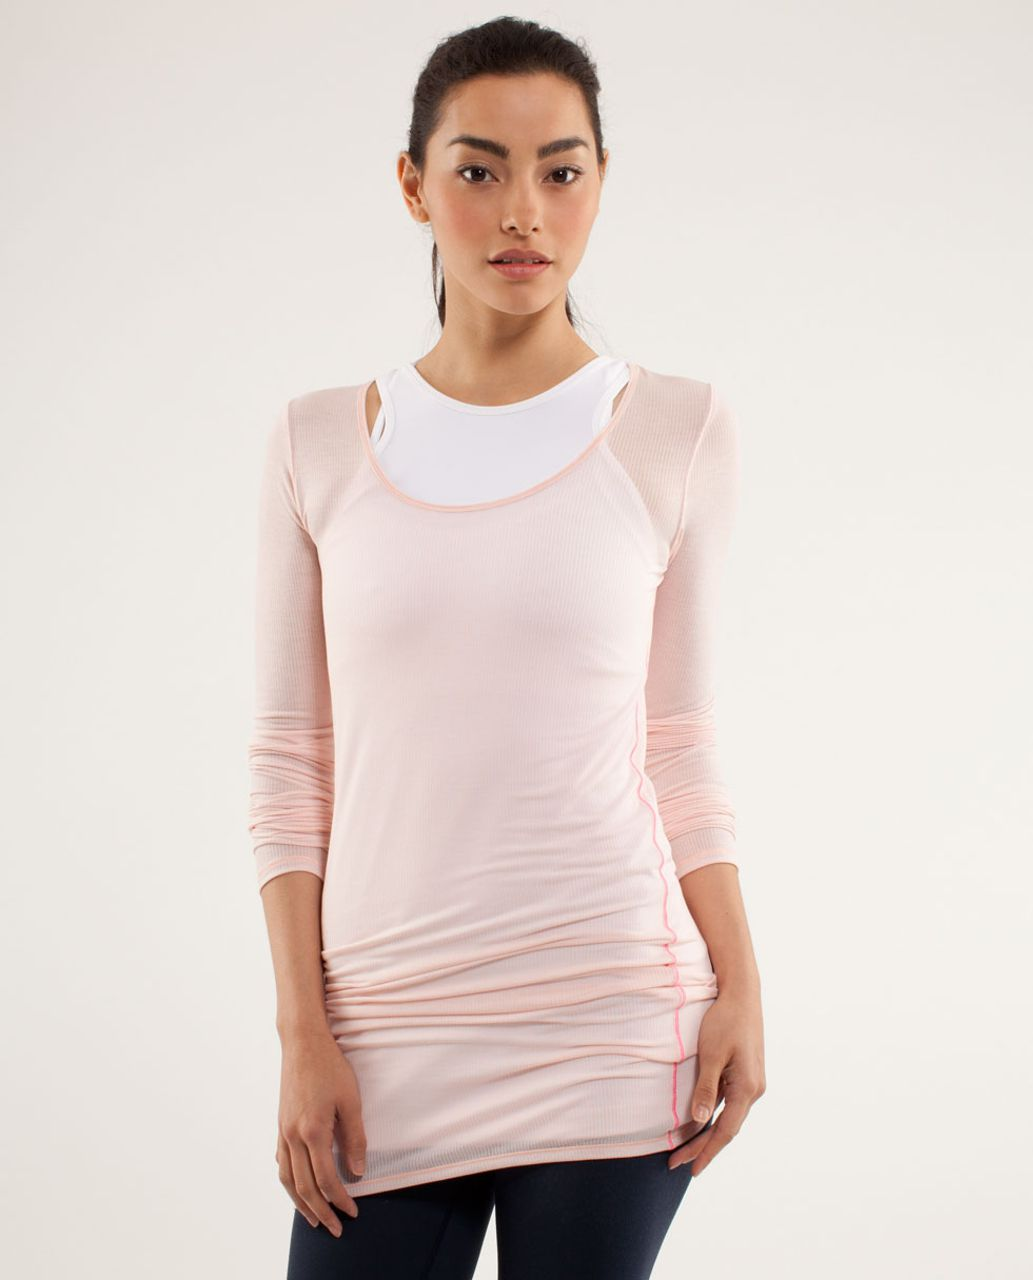 Lululemon Elongate Burnout Long Sleeve - Tonka Stripe Parfait Pink